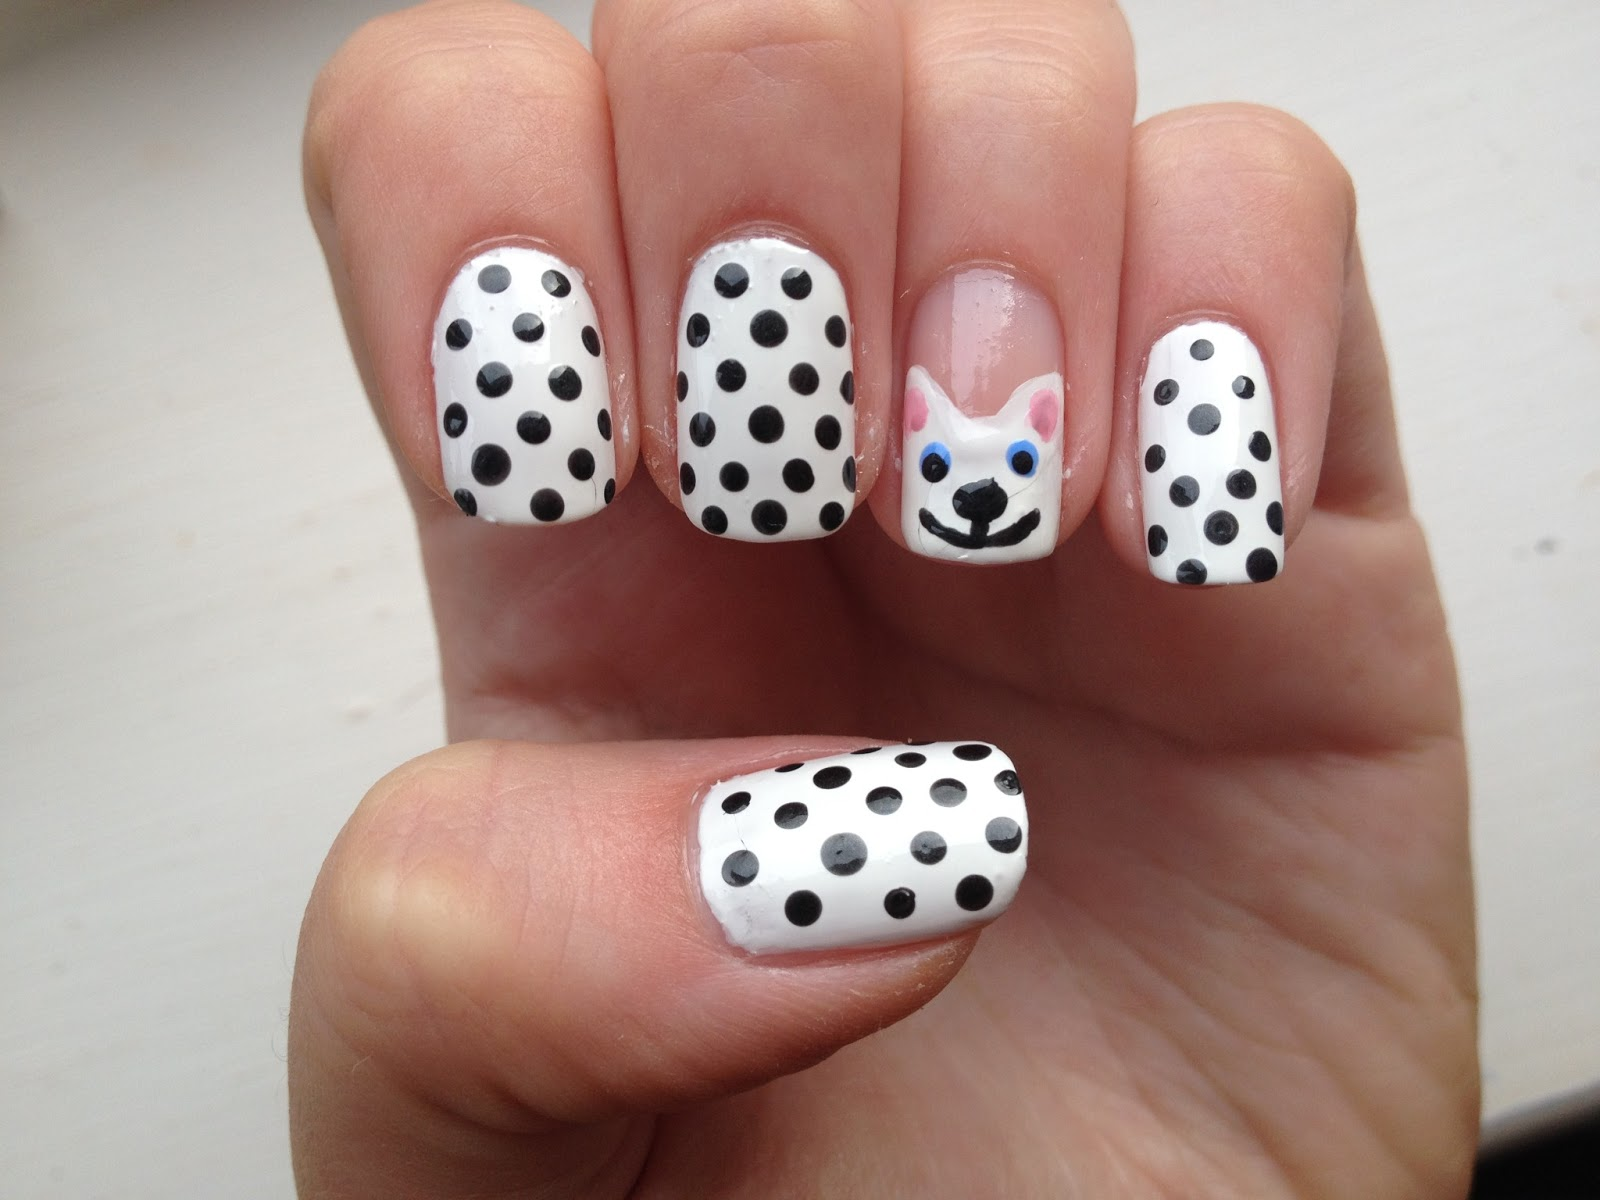 Lauras All Made Up | UK Beauty, Fashion + Lifestyle Blog: Nail Art ...